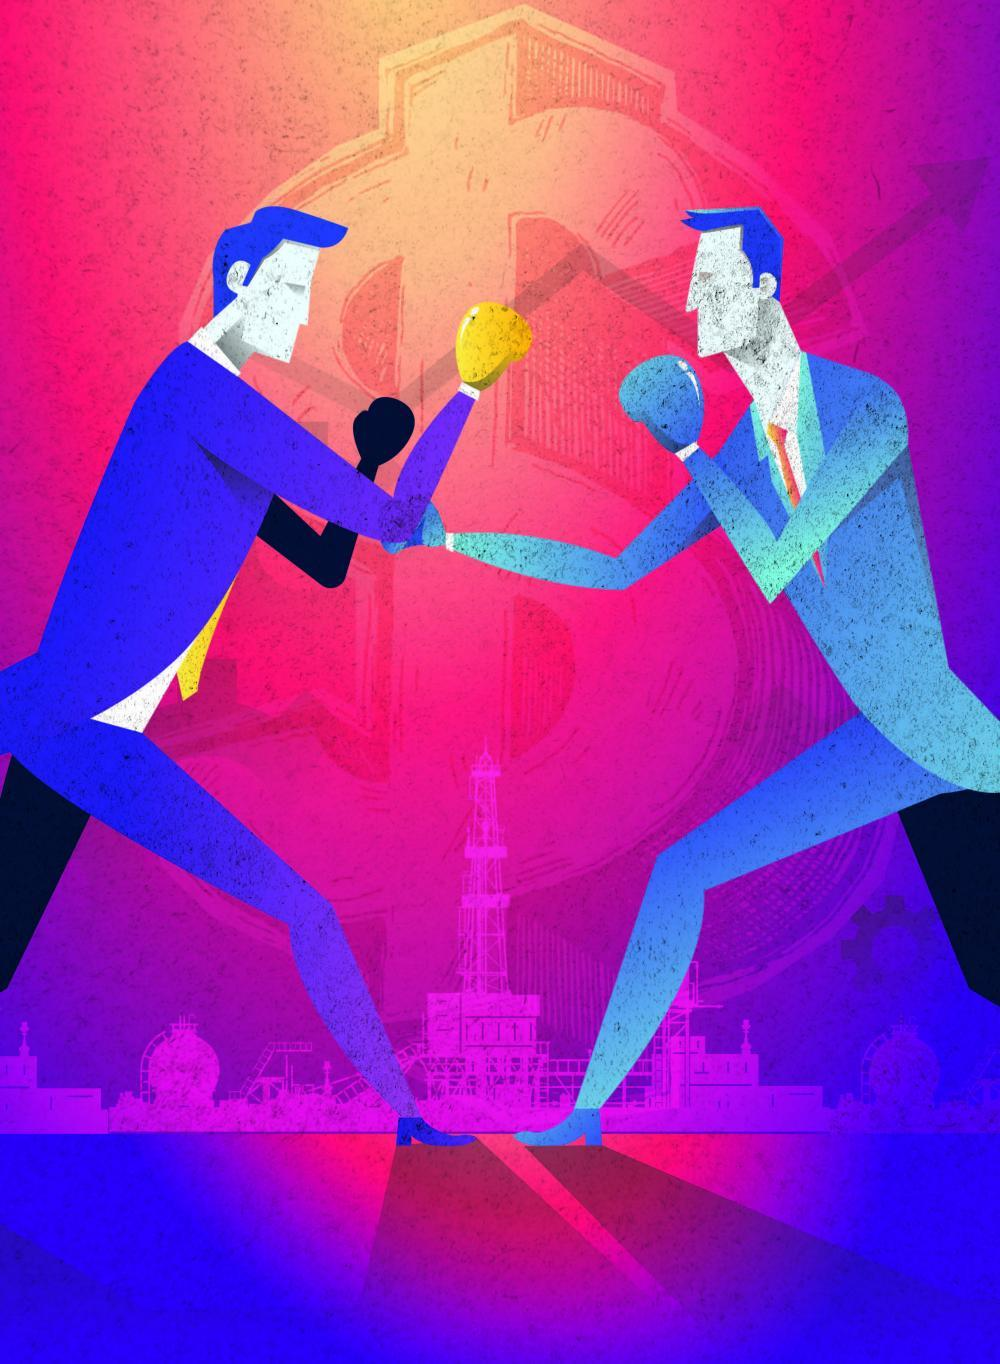 Getting the Deal Done: E&P M&A'ing with Cross Punches